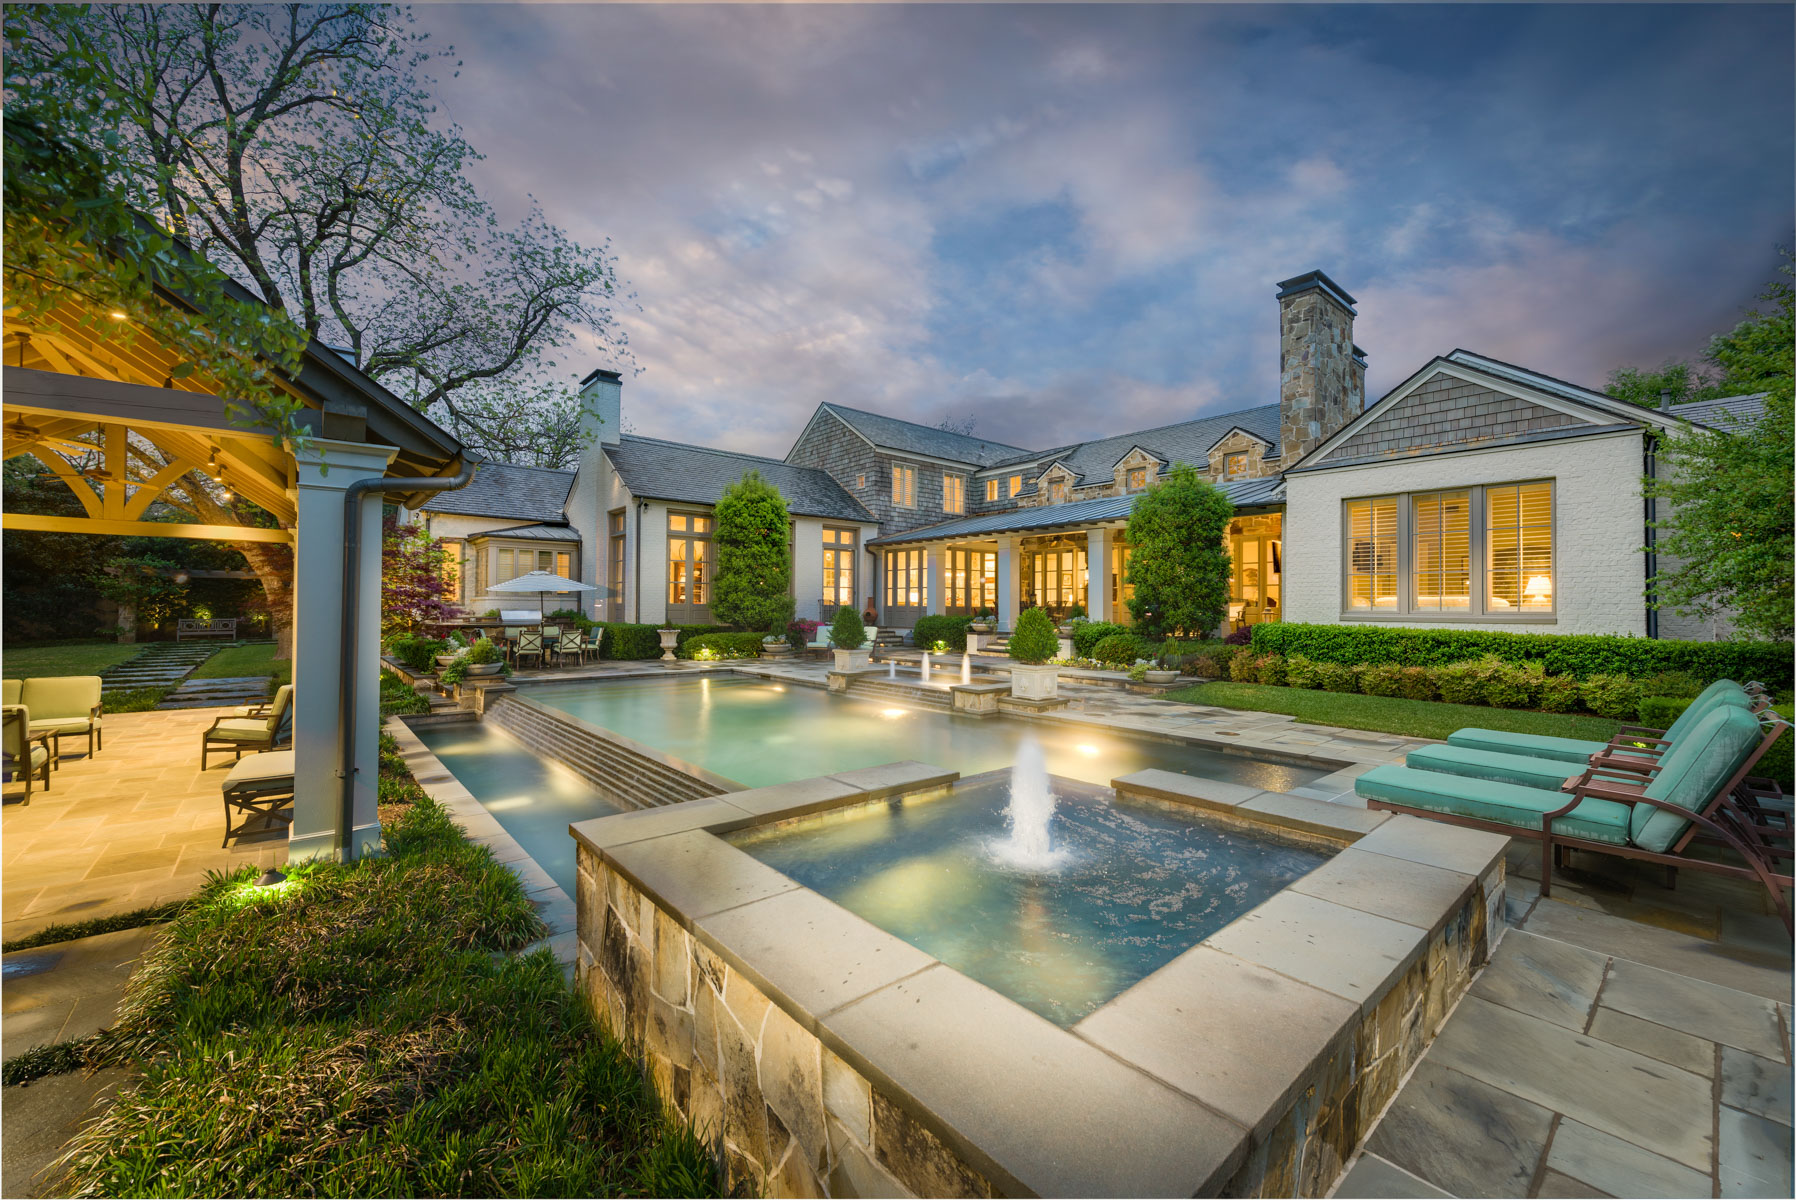 Moradia para Venda às Exceptional Preston Hollow Estate 5722 Park Lane Dallas, Texas, 75225 Estados Unidos